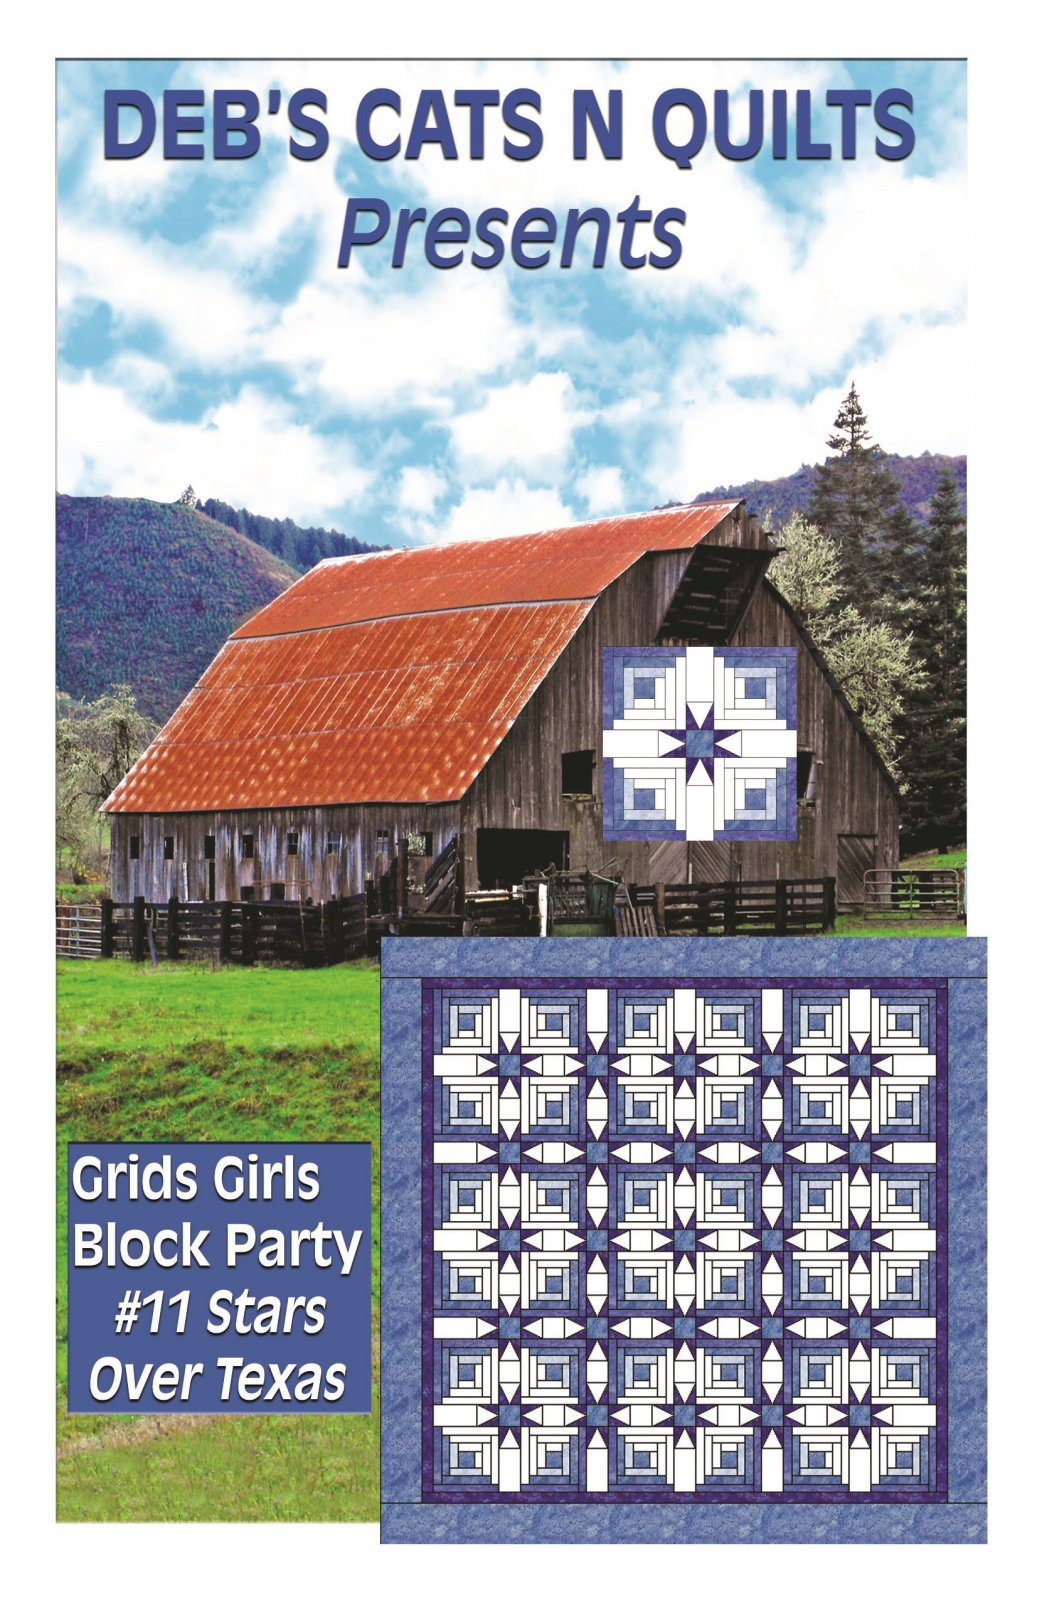 Stars Over Texas- Grids Girls block Party # 11